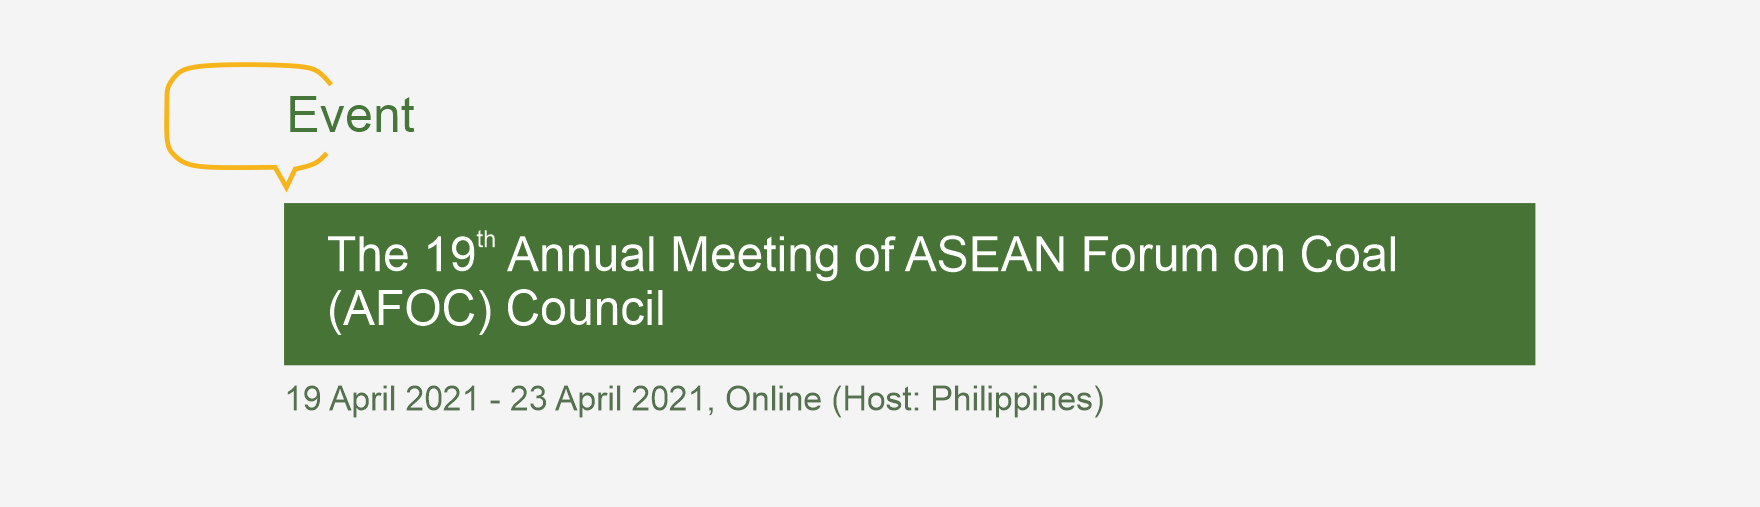 Reportage – 19th ASEAN Forum on Coal Council Meeting